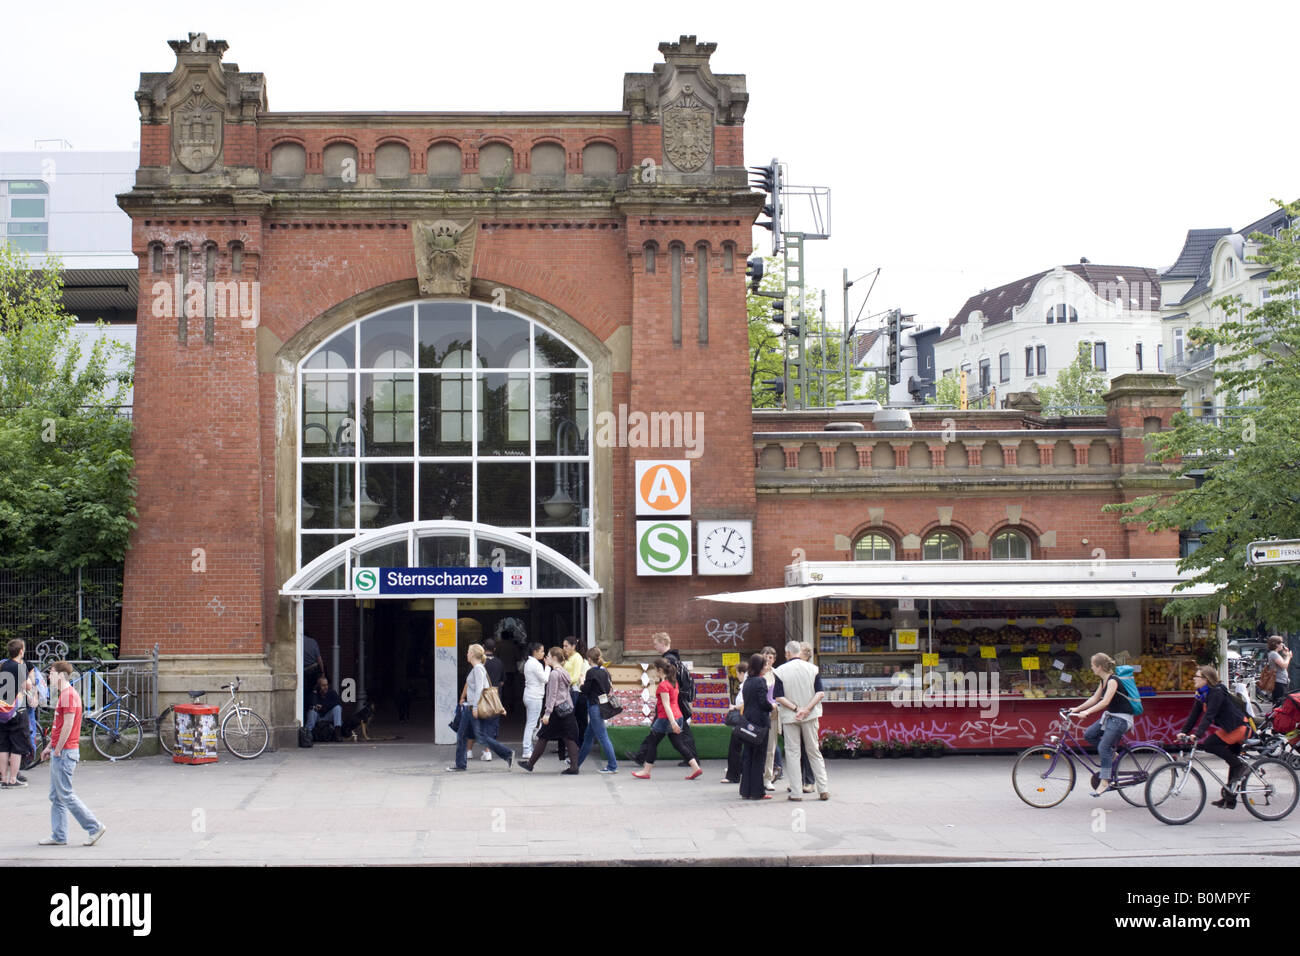 Sternschanze Station in Hamburg, Germany, May 2008 - Stock Image